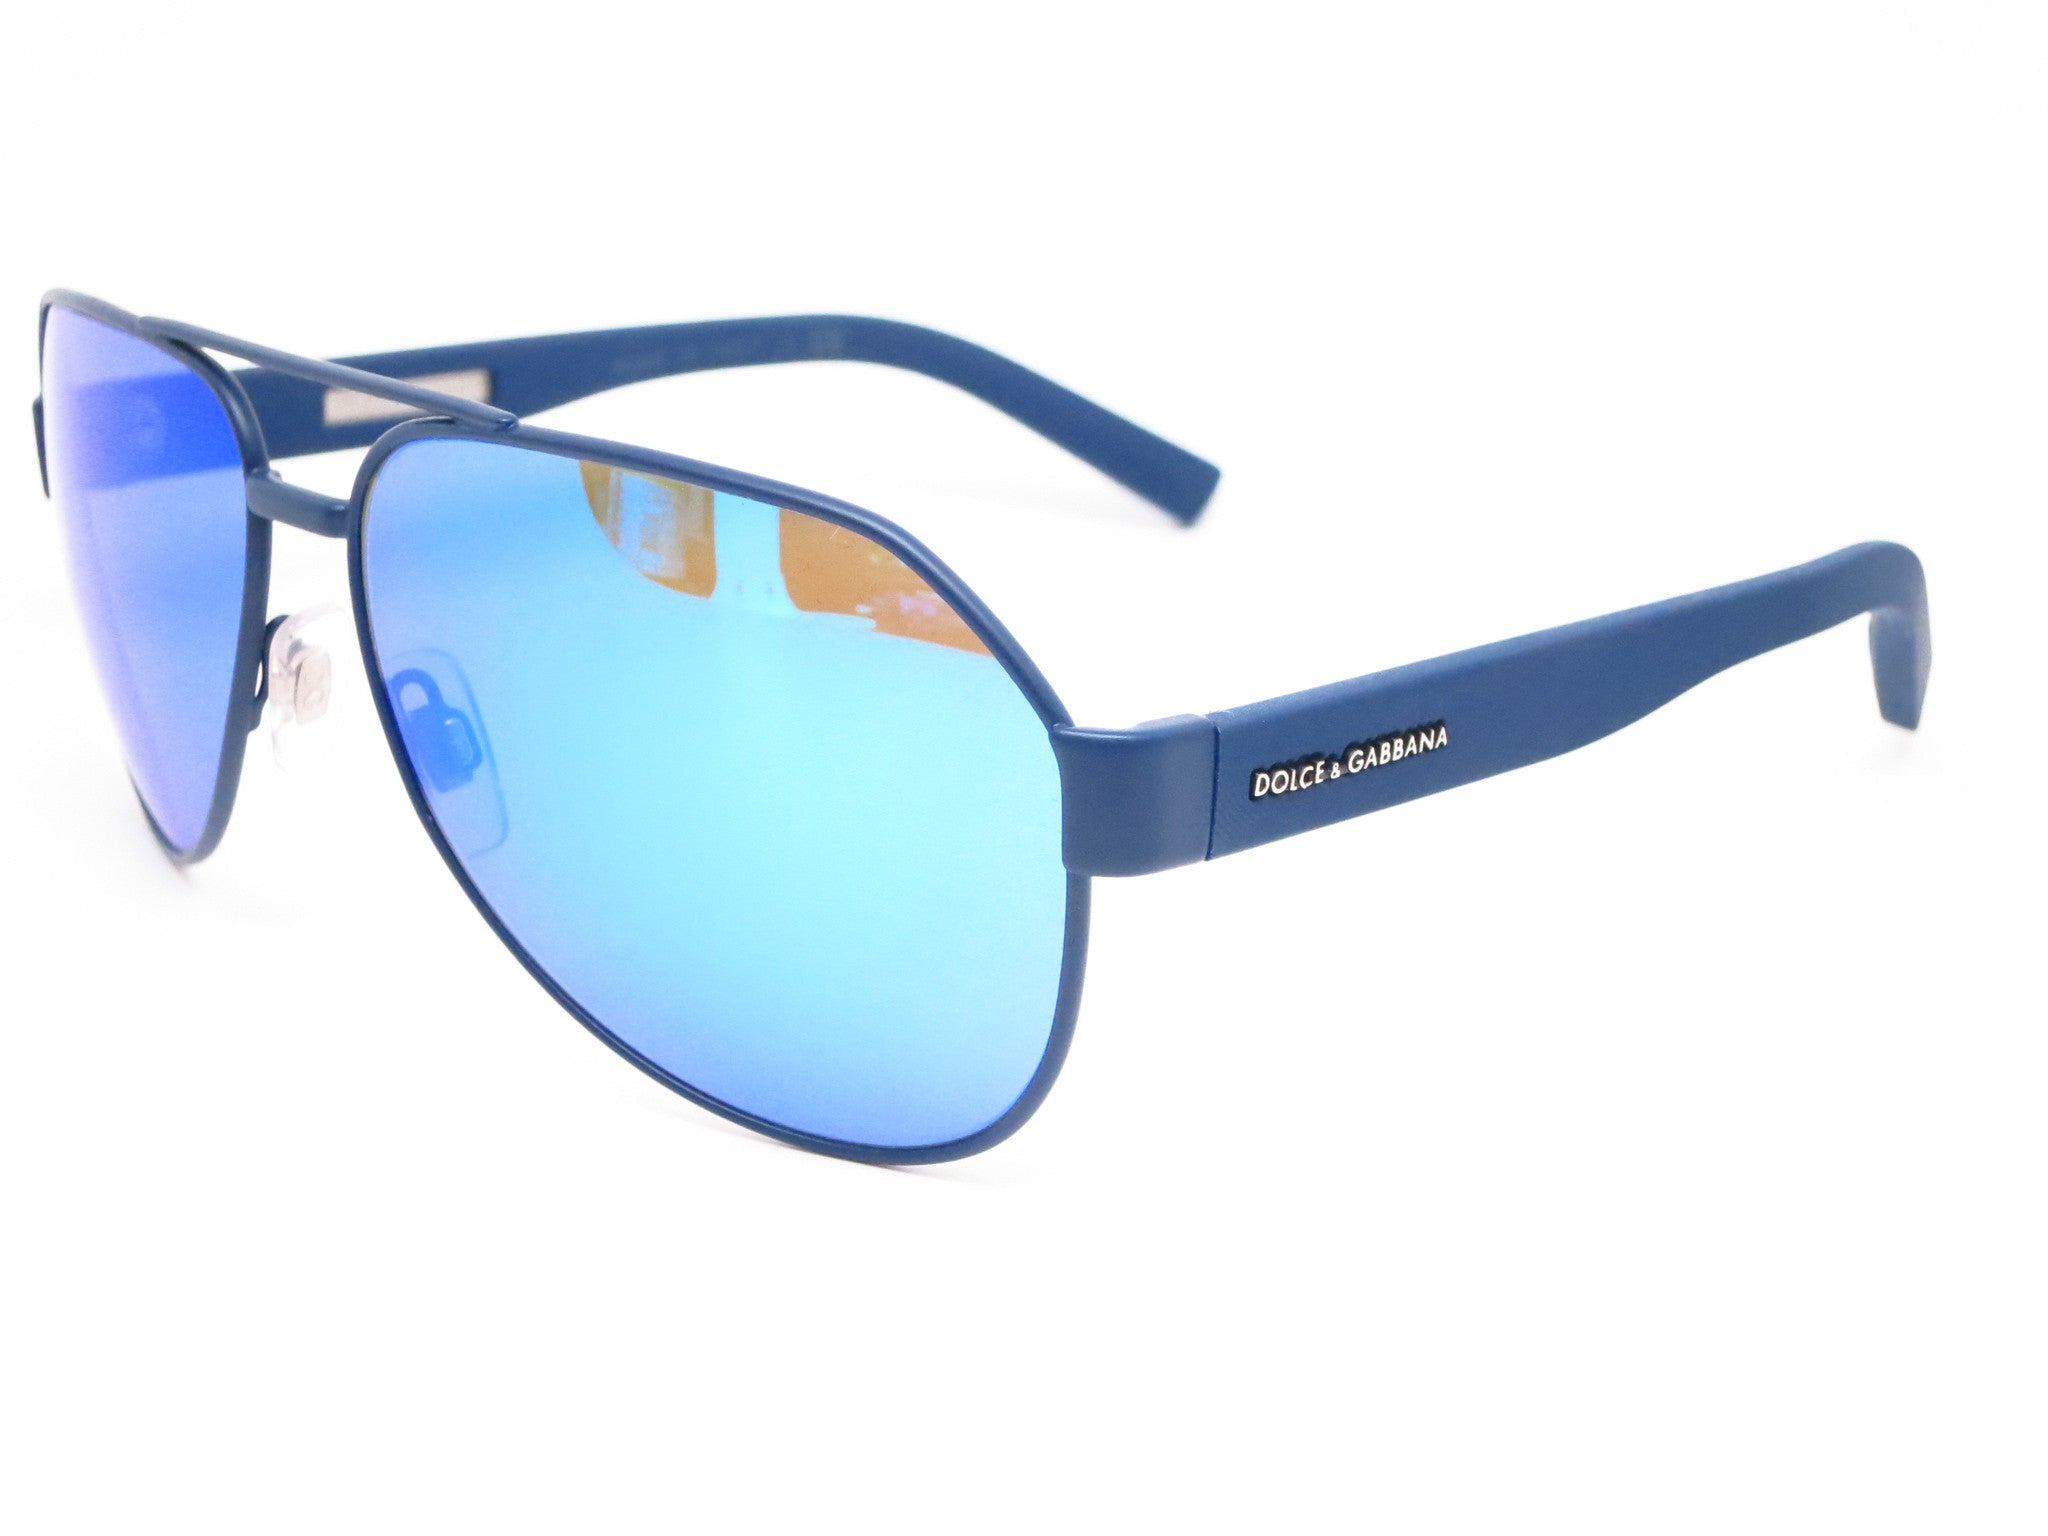 Dolce & Gabbana DG 2149 1273/25 Blue Rubber Sunglasses - Eye Heart Shades  ...